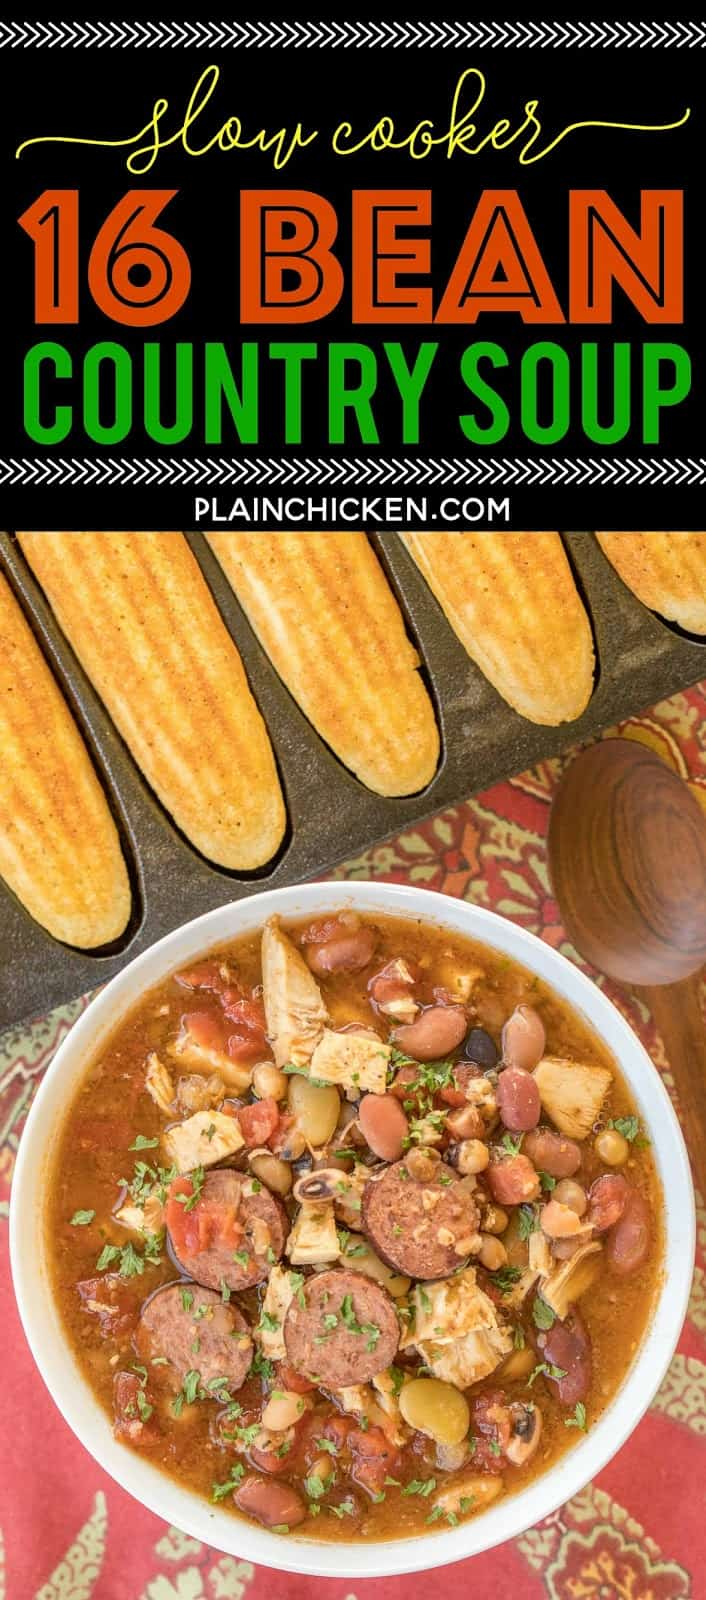 Slow Cooker 16 Bean Country Soup - absolutely DELICIOUS!!! Just dump everything in the slow cooker and let it work its magic! Smoked sausage, roasted turkey, 16 bean soup mix, tomatoes and seasonings. All you need is some cornbread and you have an easy weeknight meal. Freeze leftover for a quick meal later!! Great way to use up leftover holiday turkey! #souprecipe #slowcookerrecipe #leftoverturkey #soup #slowcooker